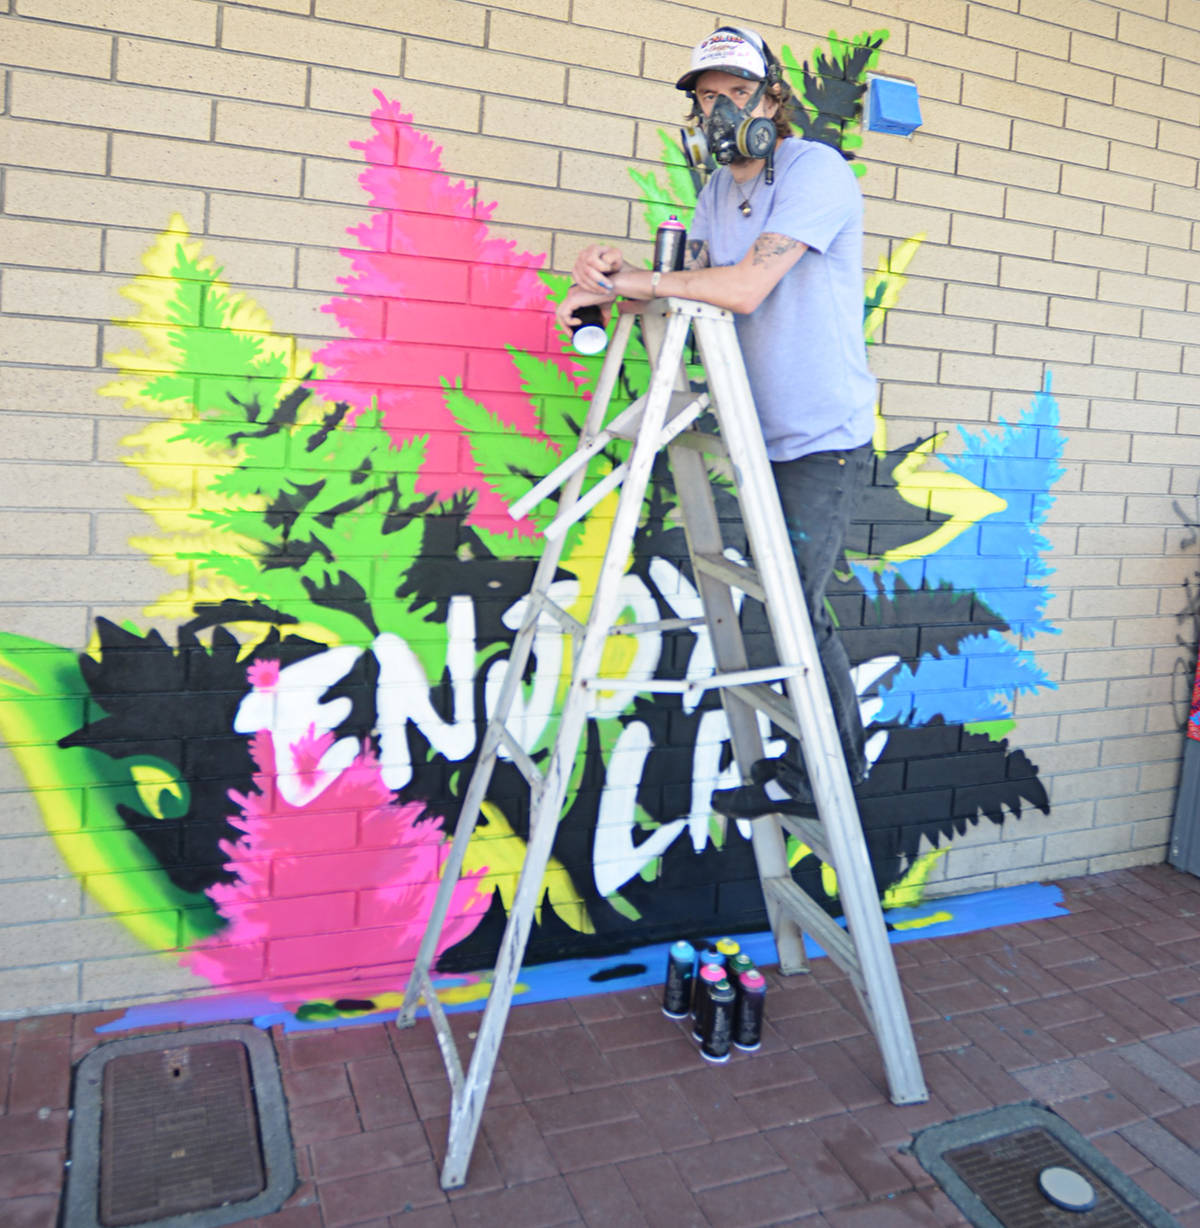 A new mural was painted on a wall in Salt Lane May 14, 2021, by Fort Langley artist Alex Stewart. (Heather Colpitts/Langley Advance Times)